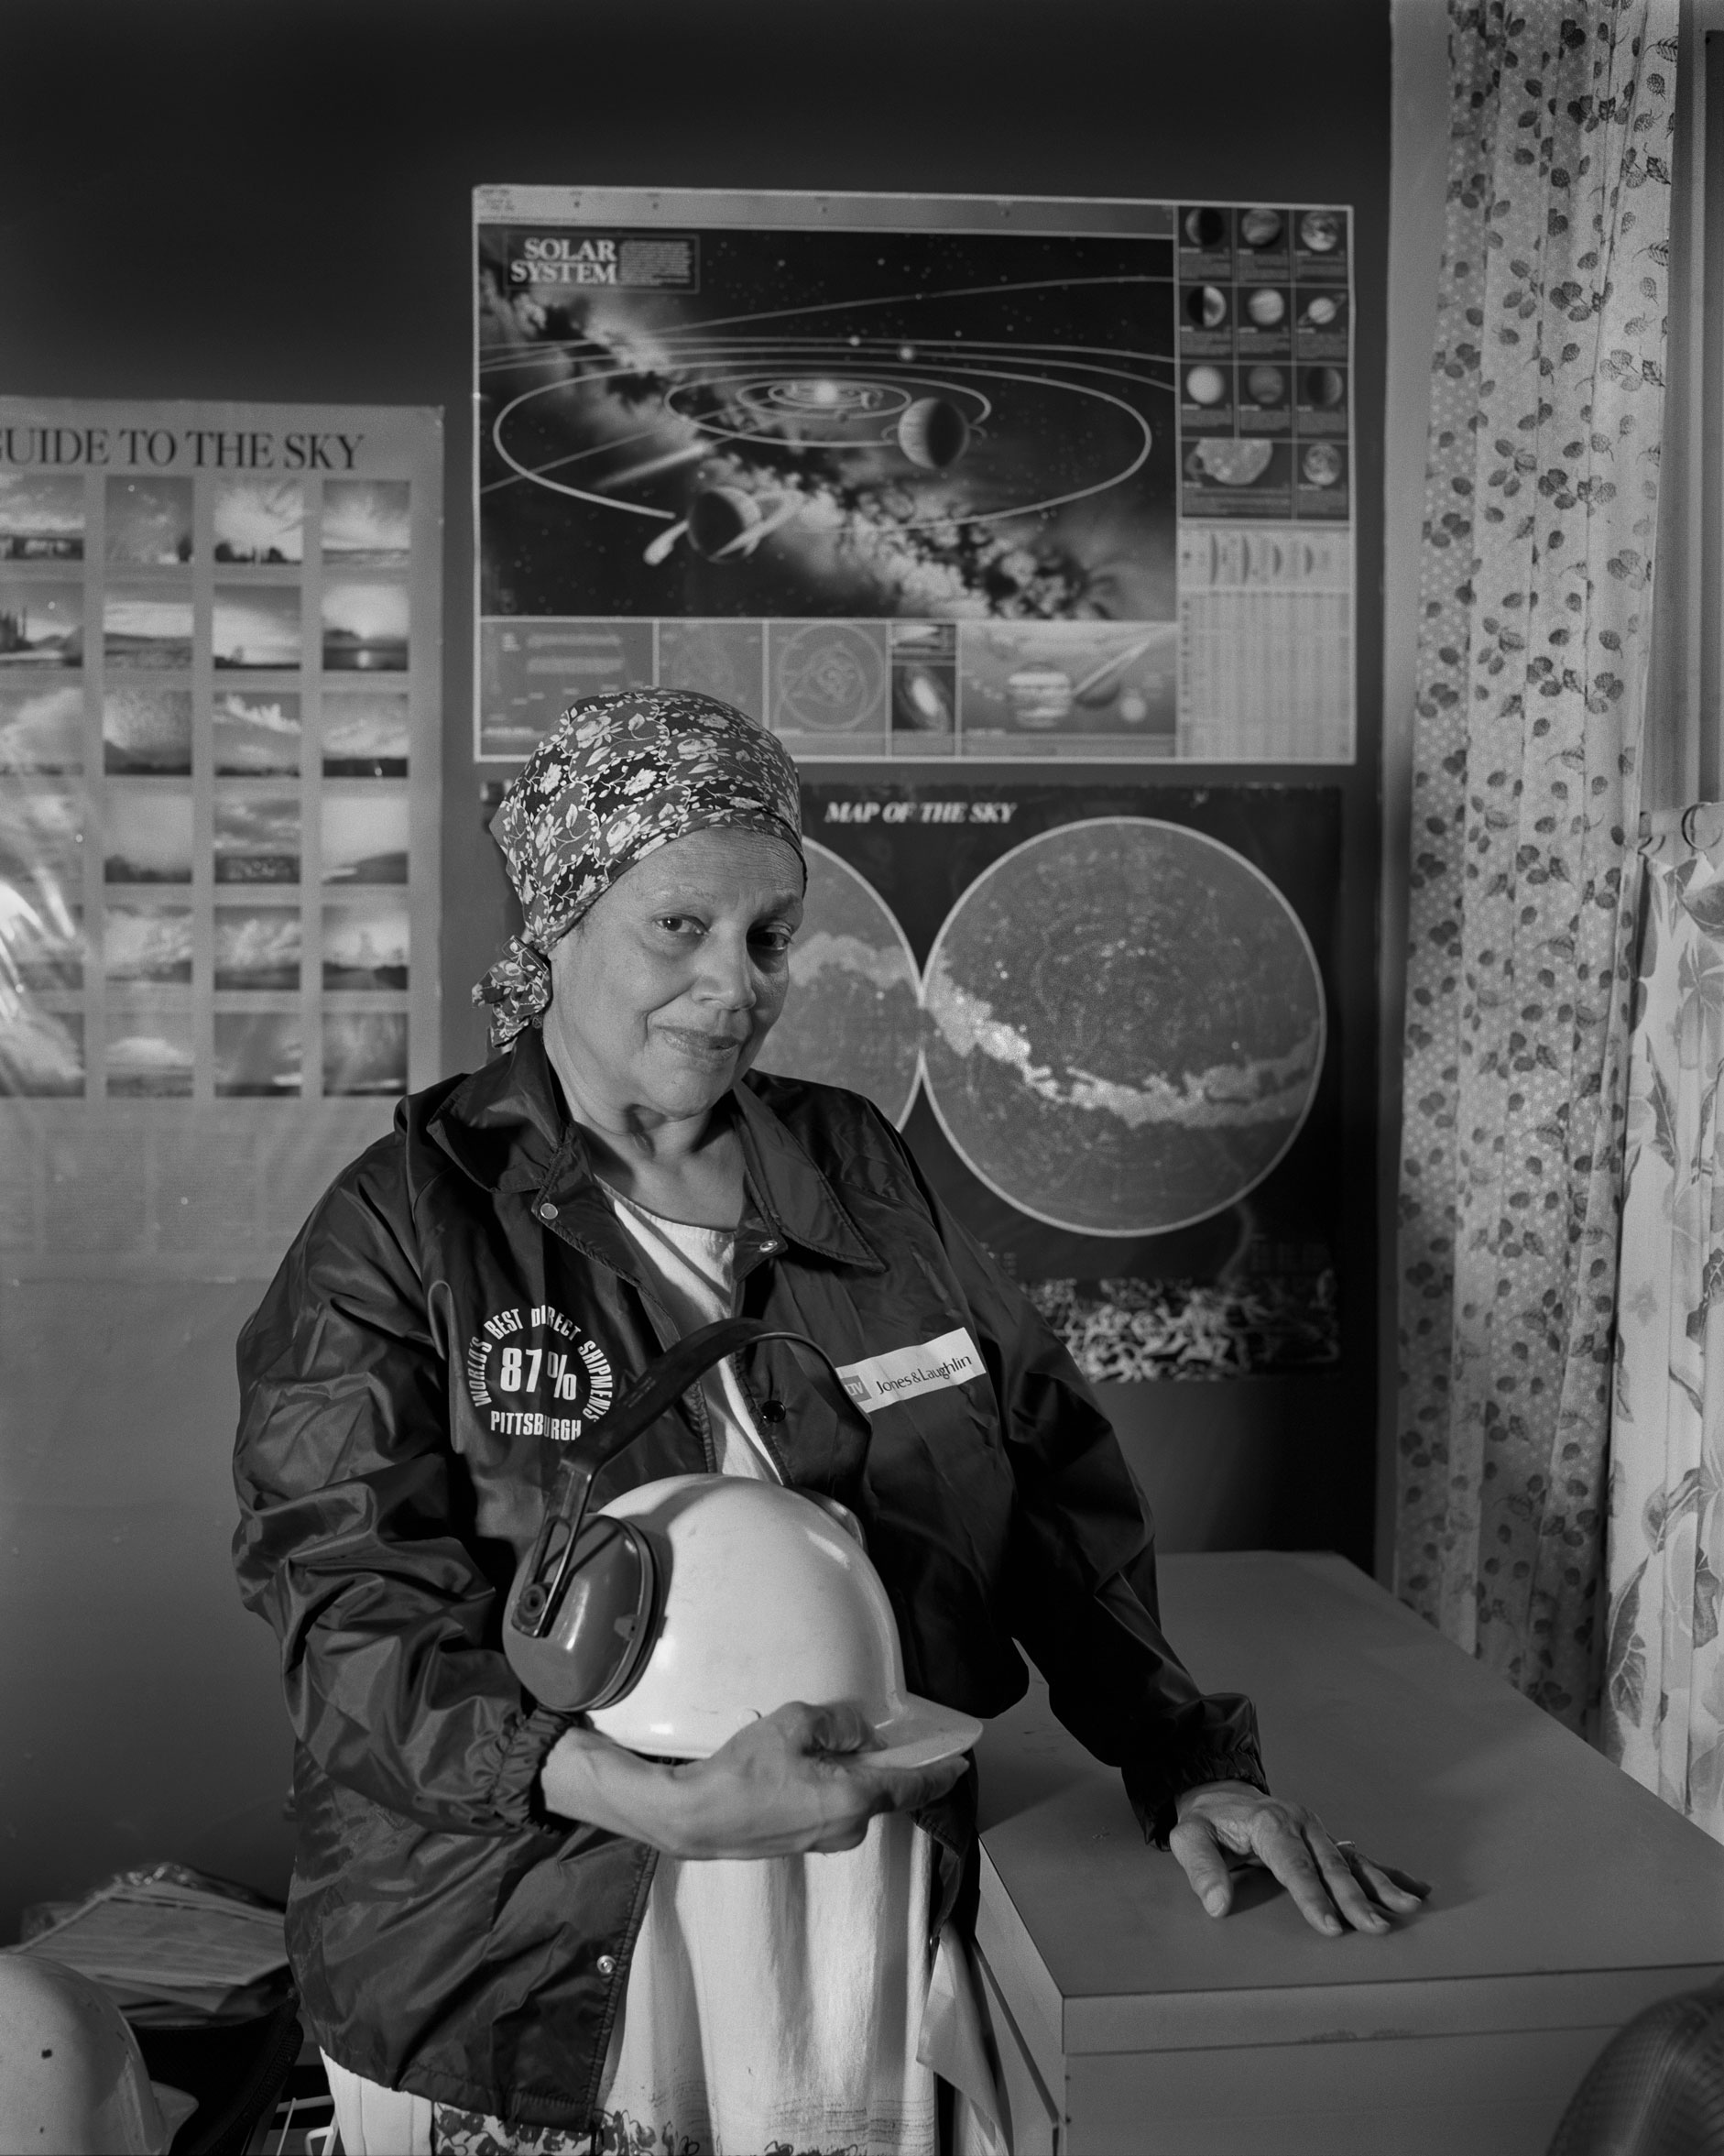 Sandra Gould Ford in Her Office in Homewood PA, 2017. LaToya Ruby Frazier. Courtesy of the artist and Gavin Brown's enterprise, New York/Rome.